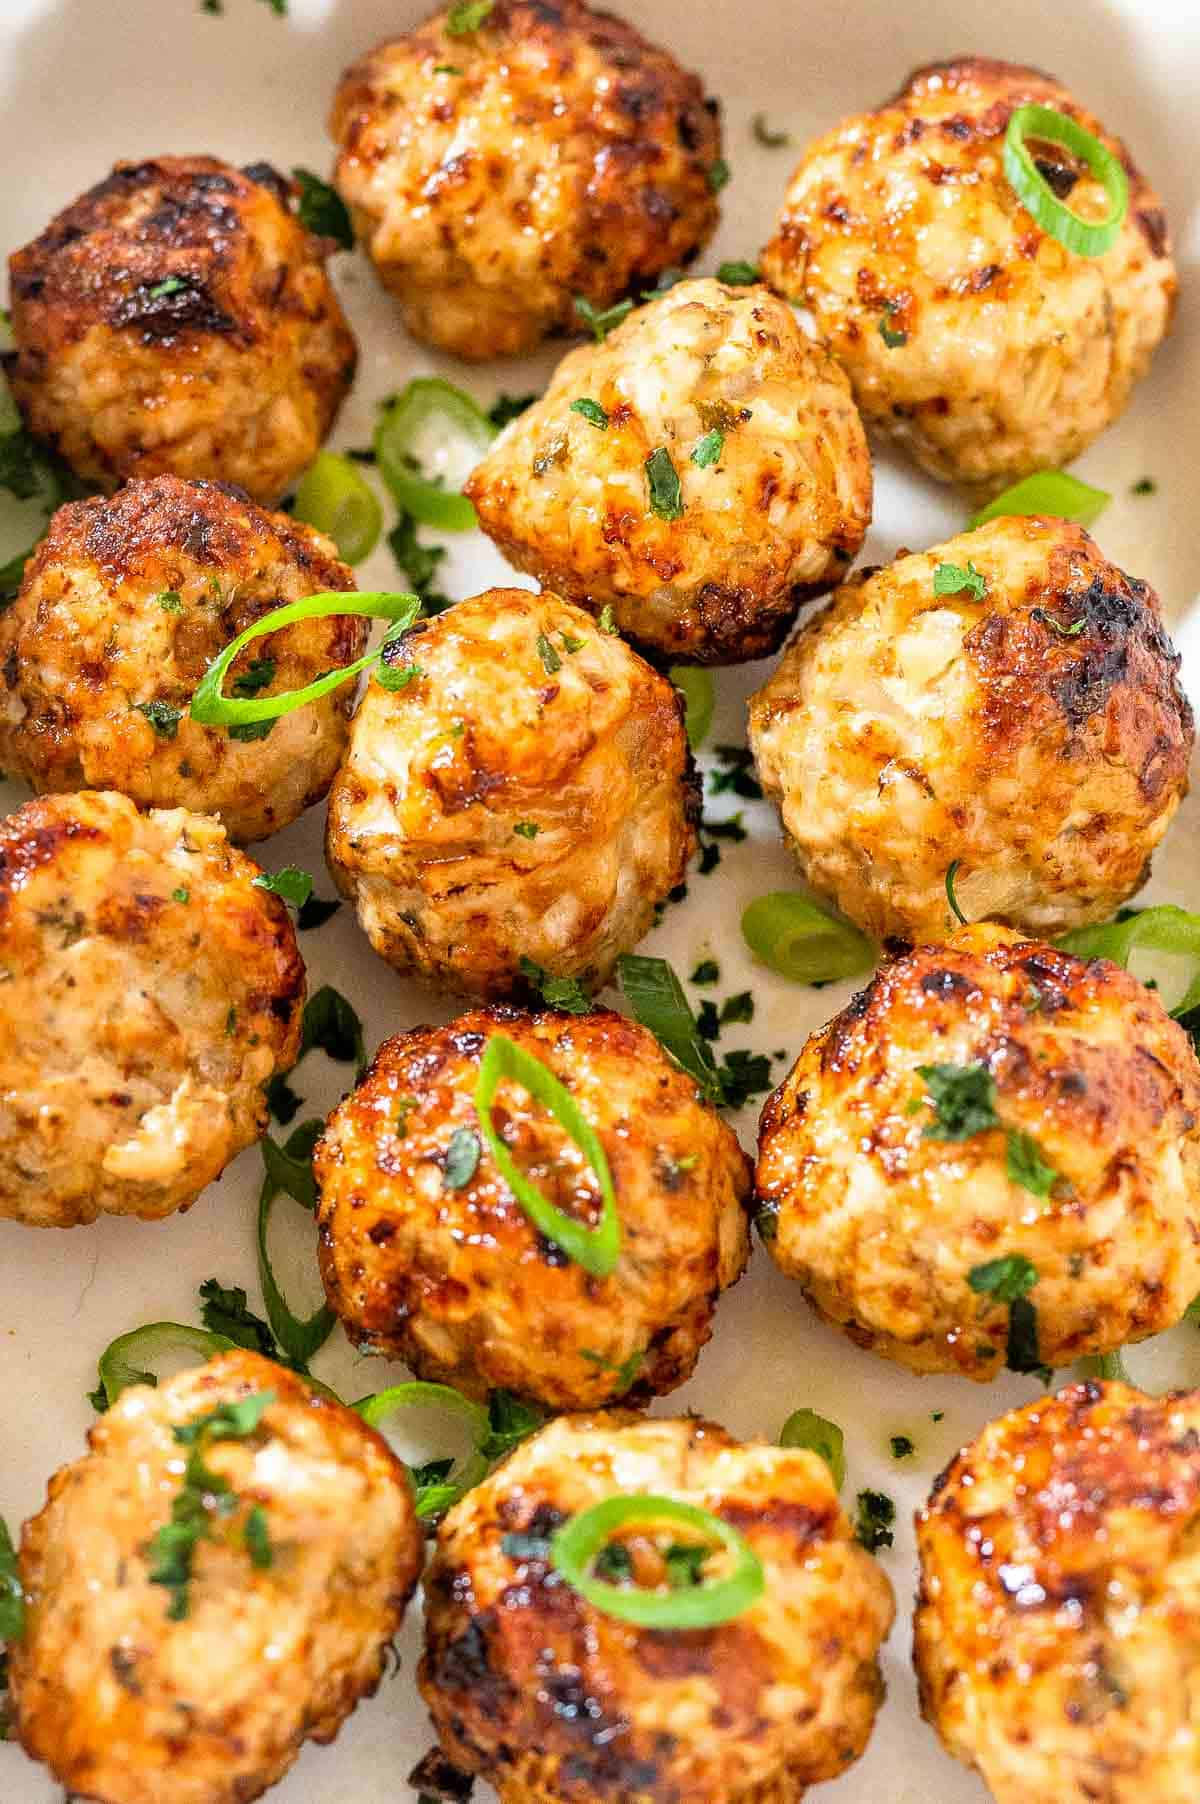 cooked air fryer turkey meatballs garnished with green onions and herbs